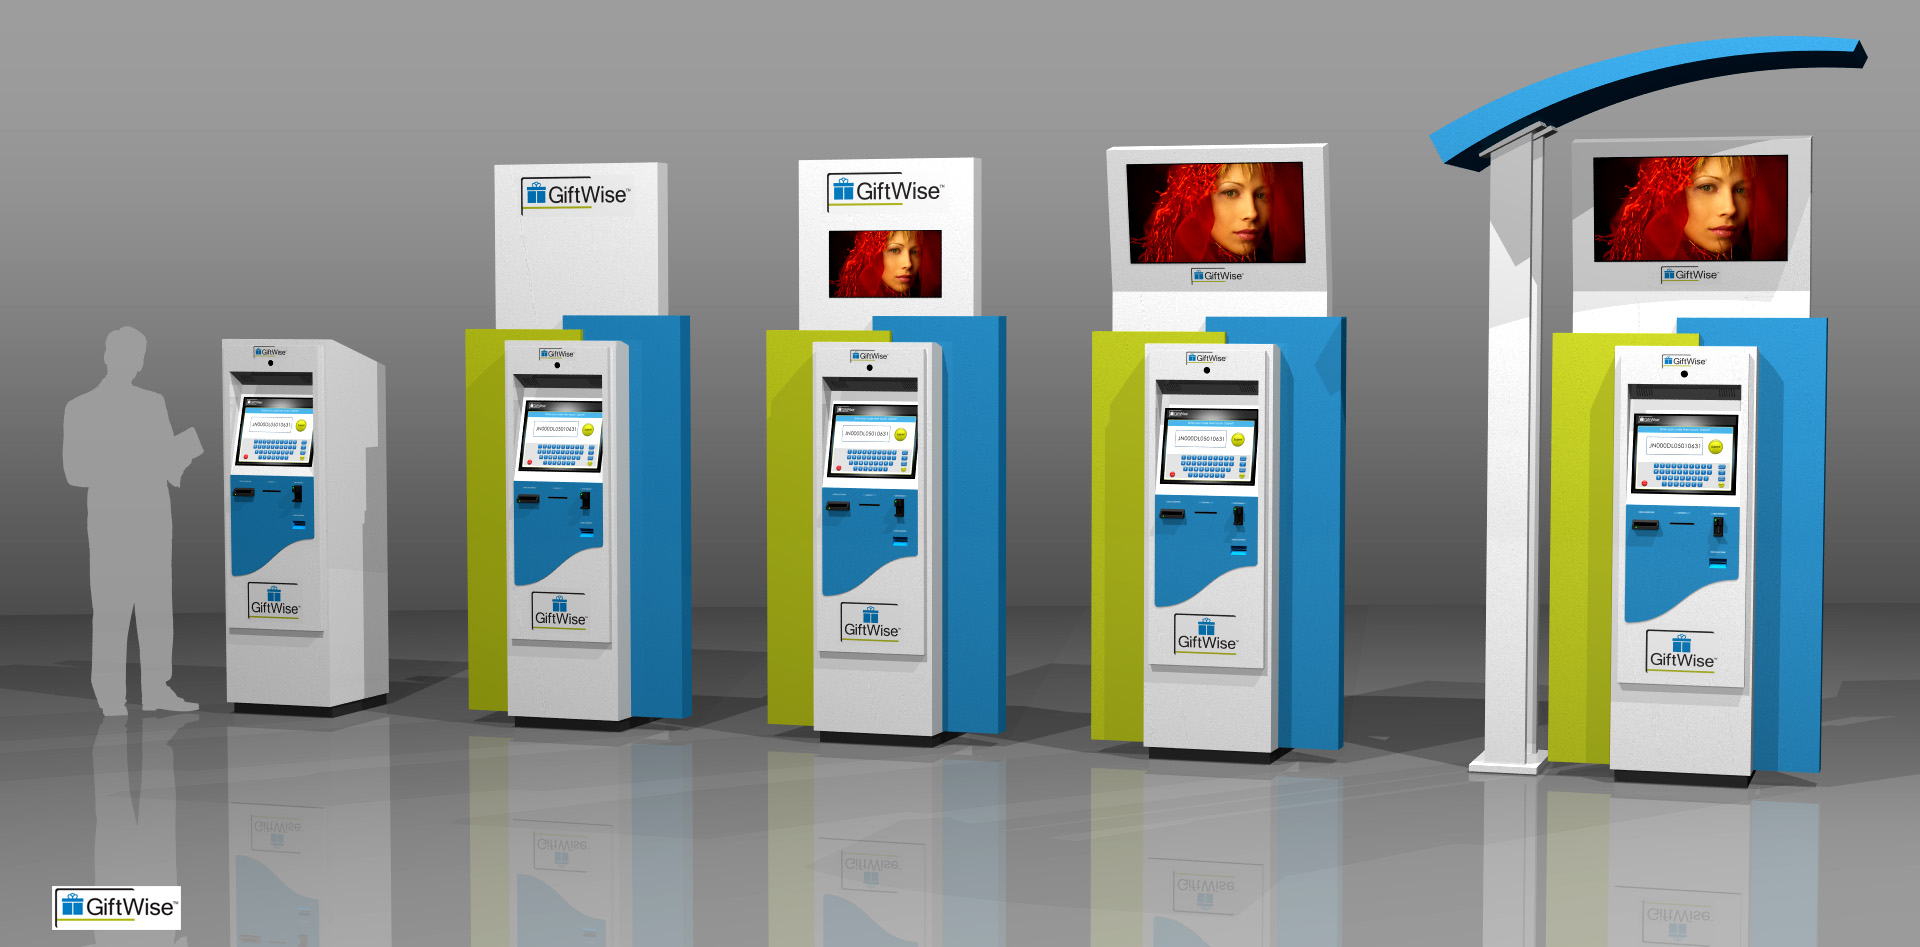 GiftWise Indoor and Outdoor Self-Service Gift Card Vending Kiosks